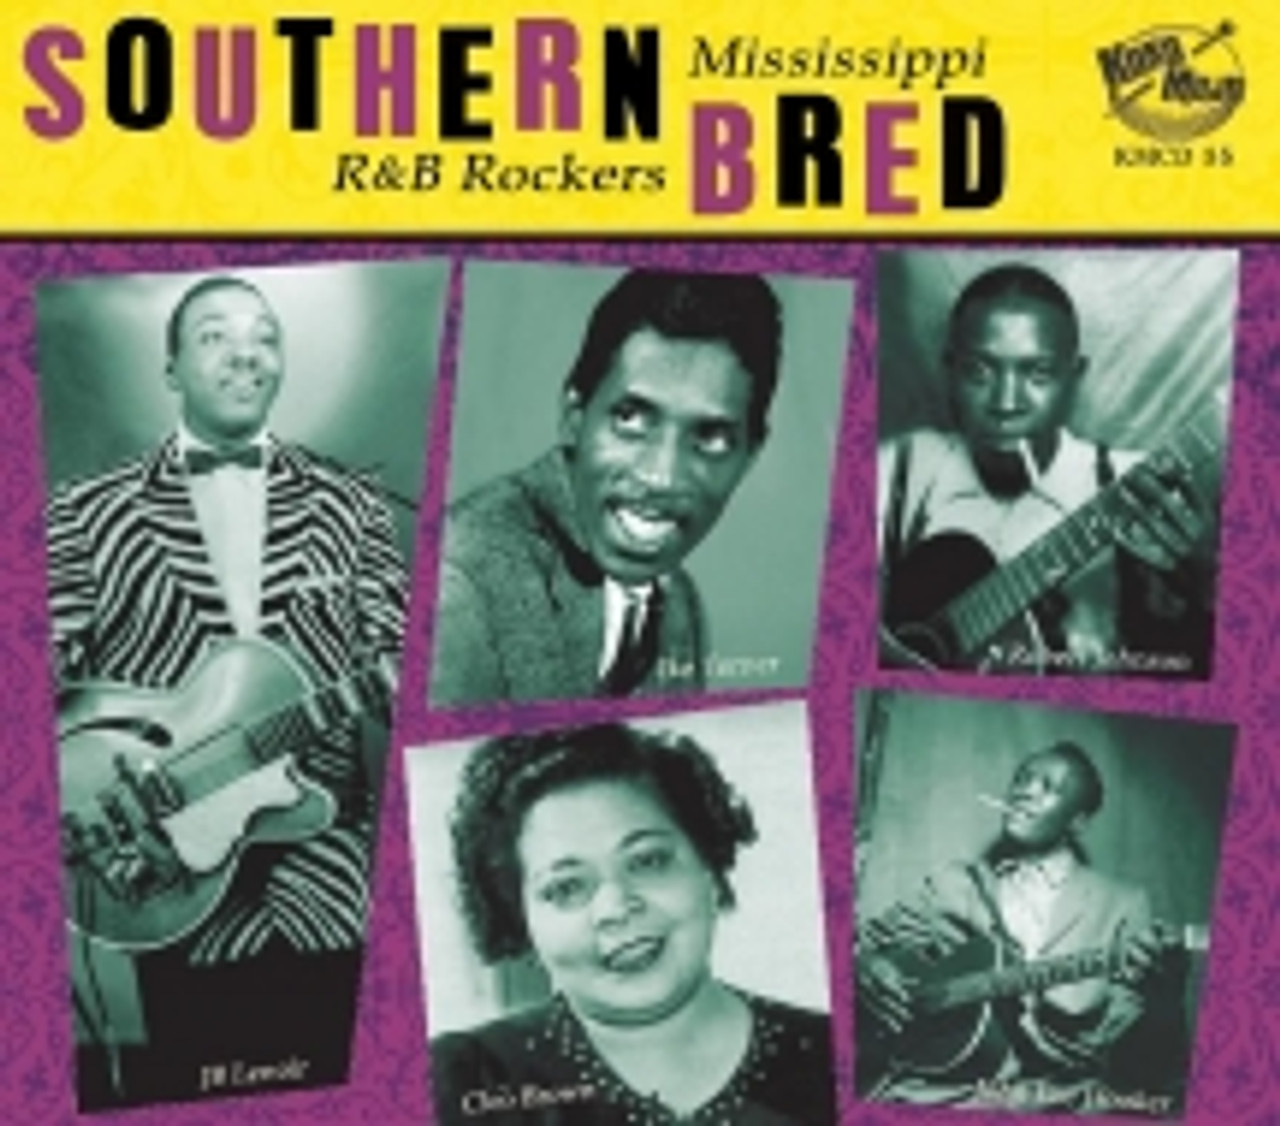 Southern Bred: Mississippi R&B Rockers Vol. 2 - 28 SONGS